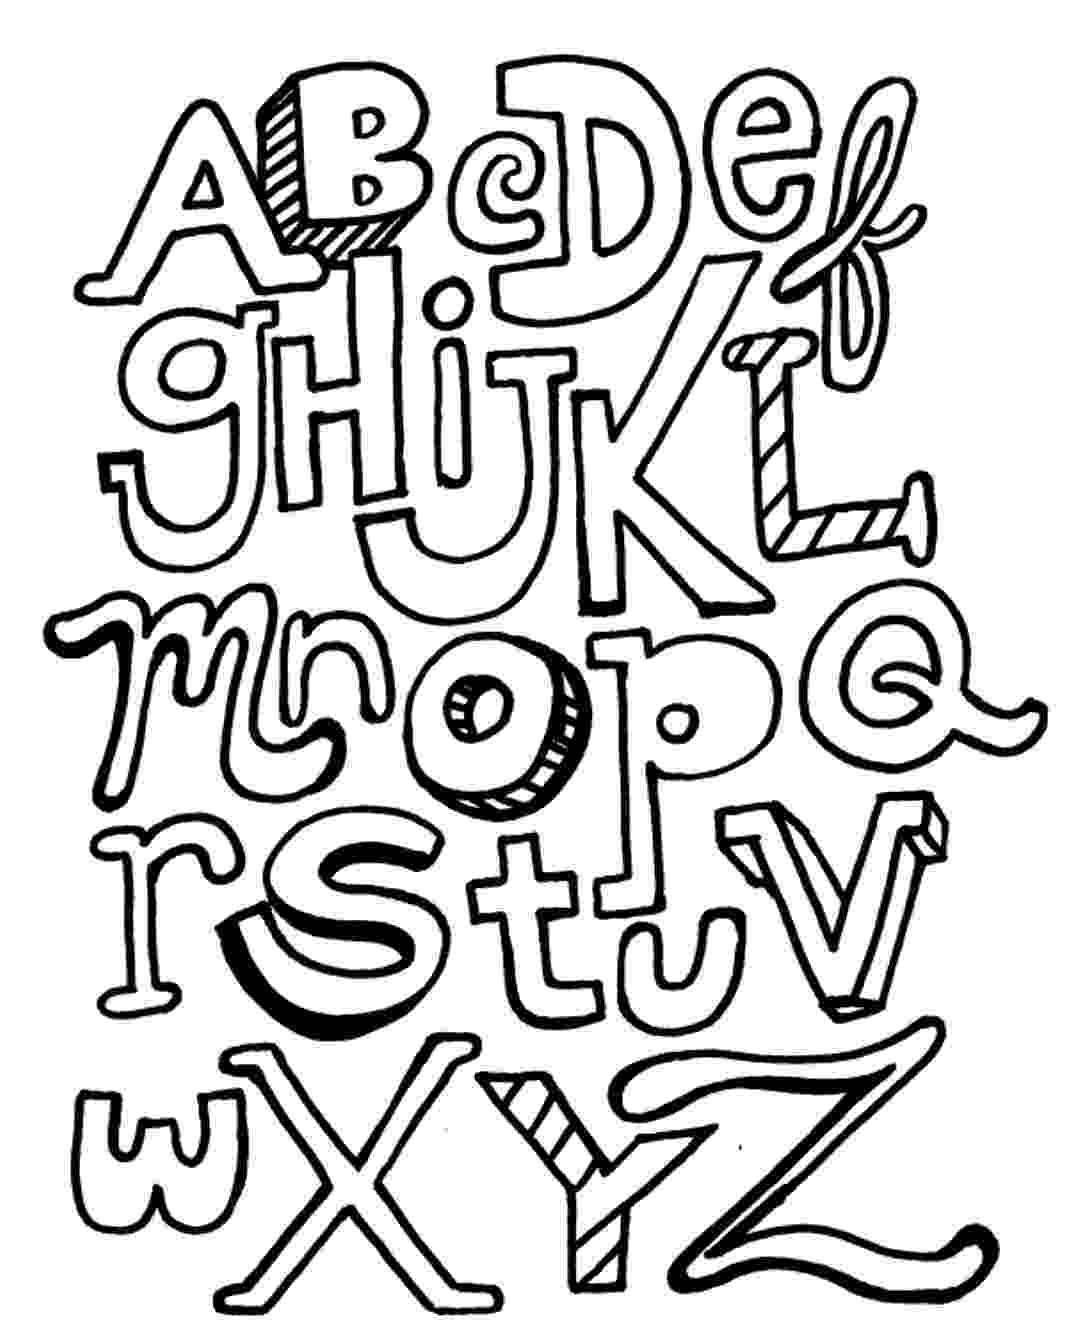 english alphabet coloring pages free printable abc coloring pages for kids pages coloring alphabet english